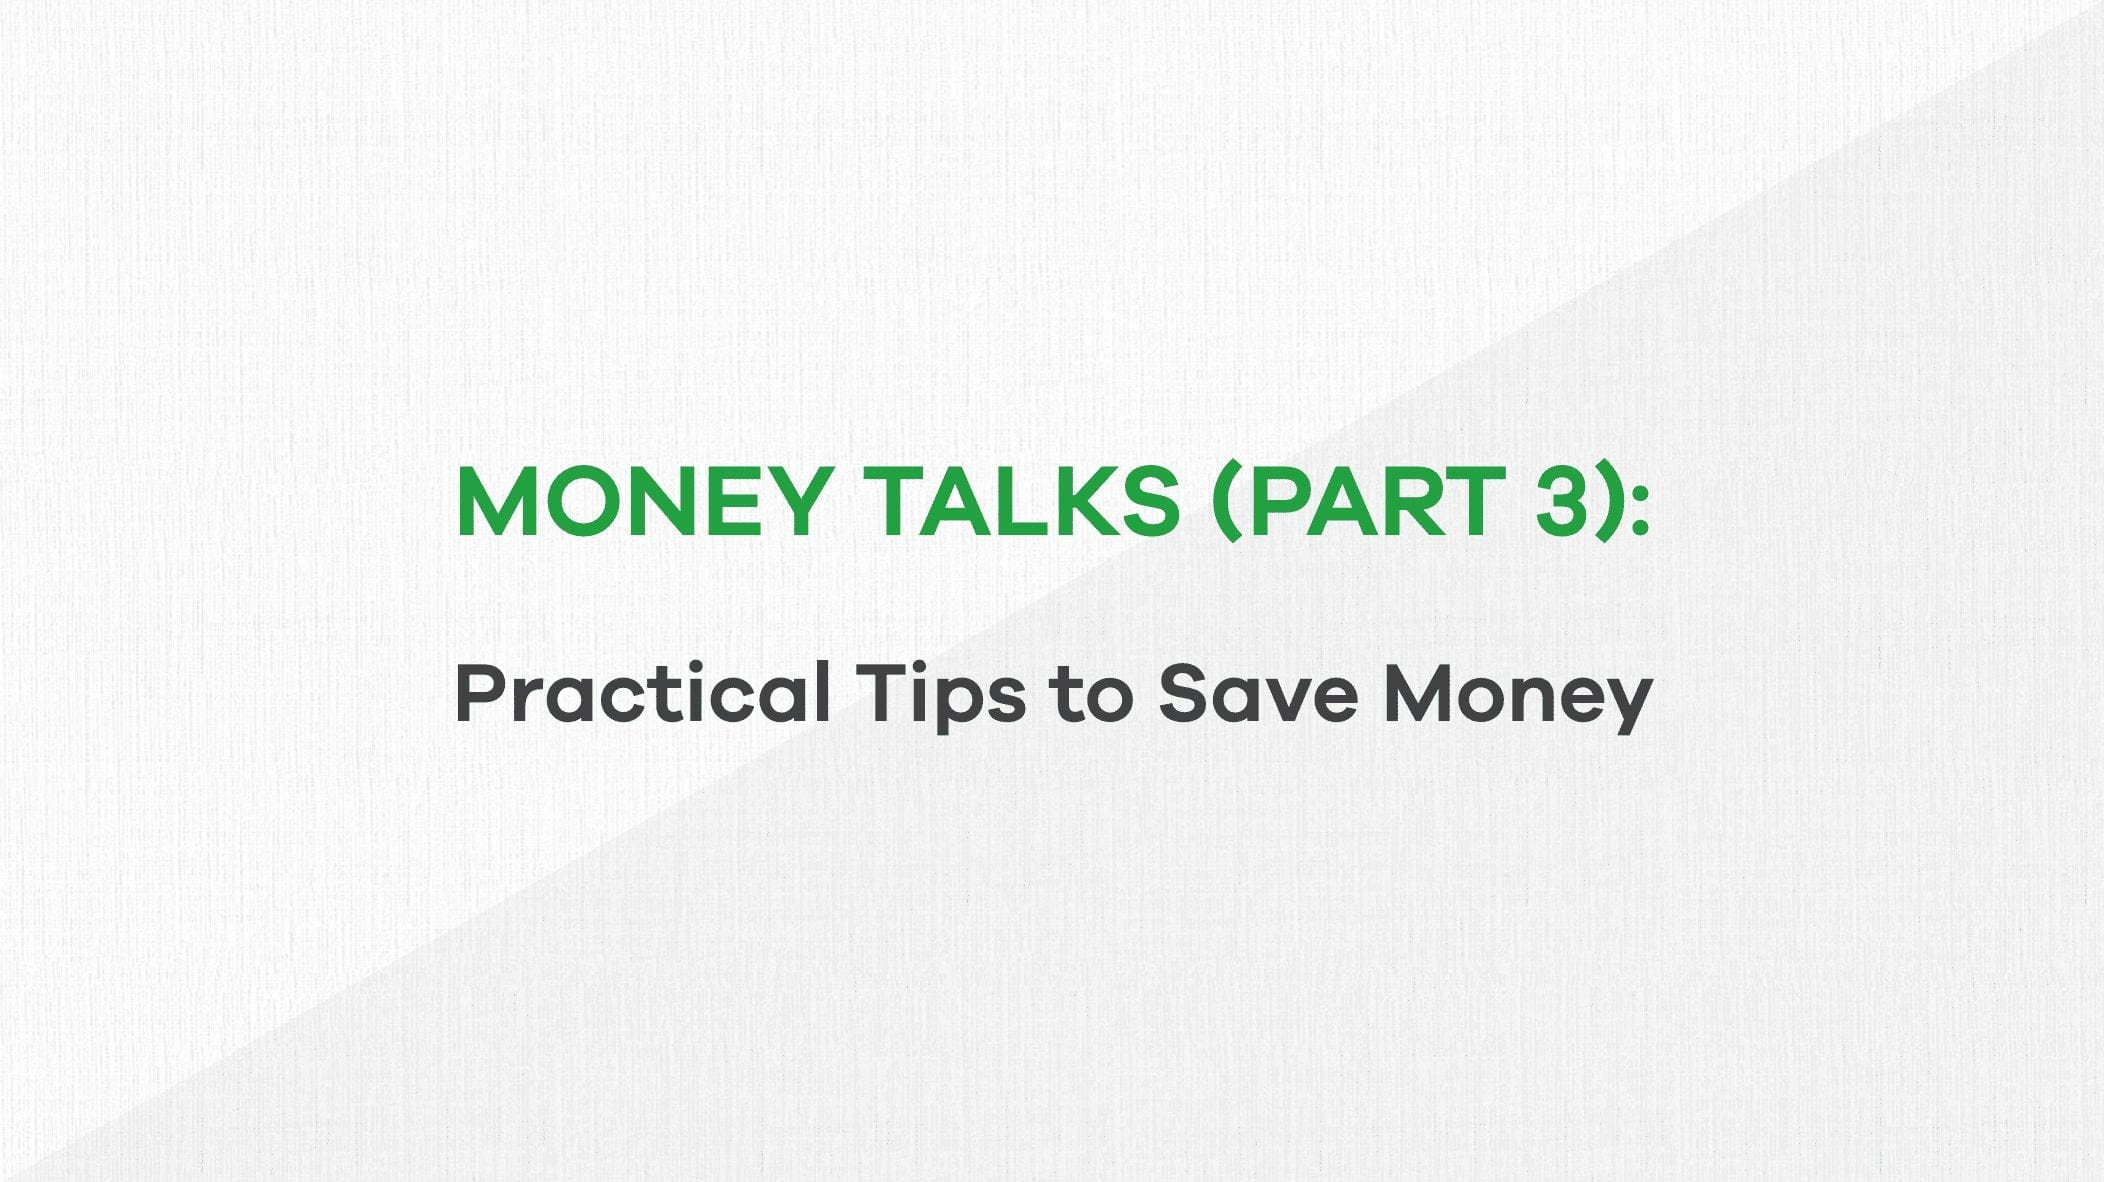 Money talks - Practical tips to Save Money